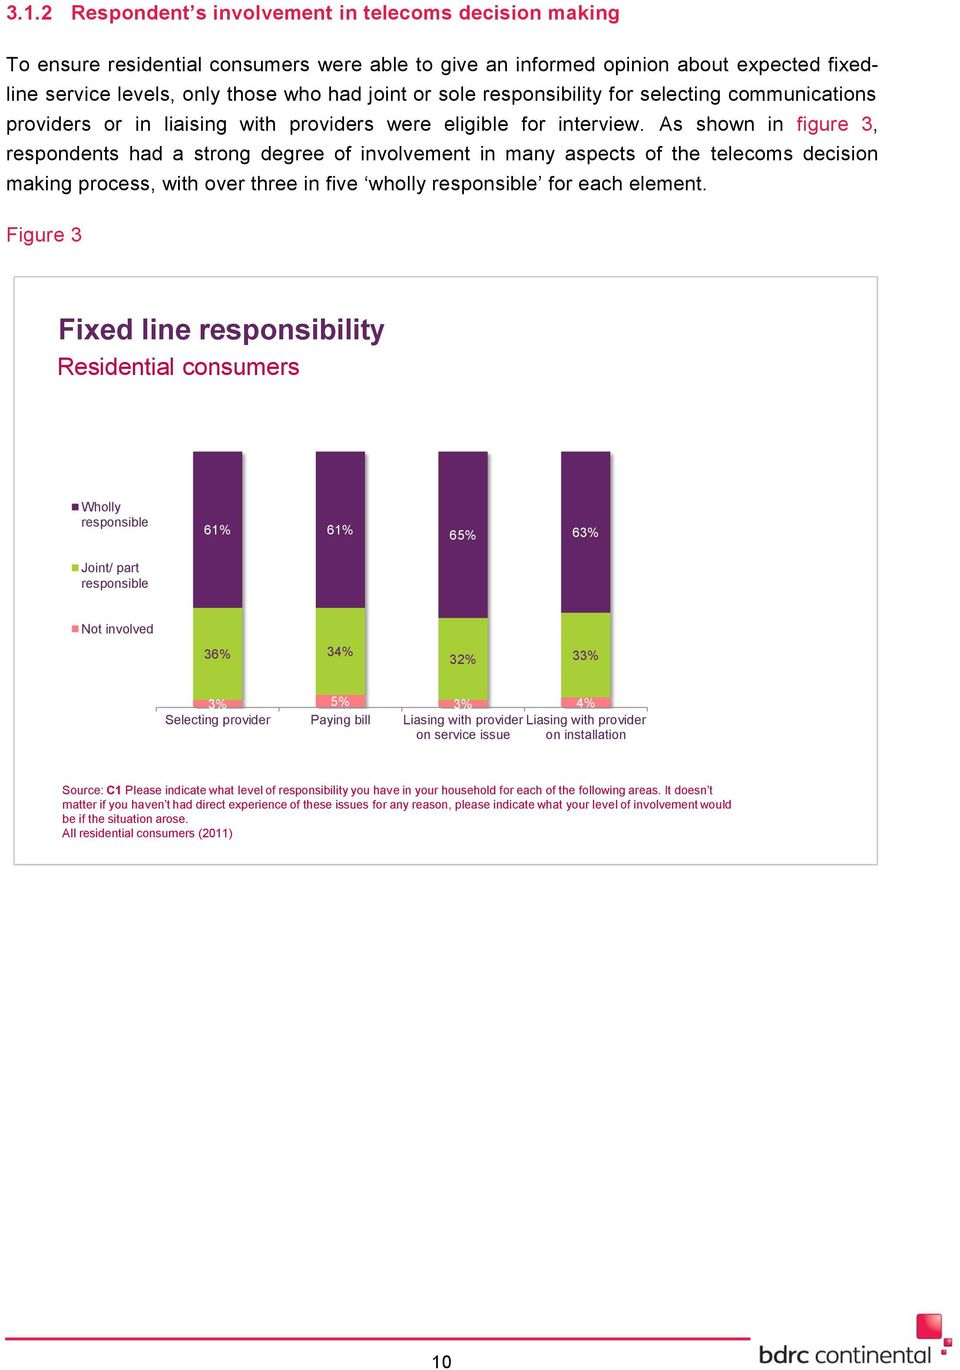 As shown in figure 3, respondents had a strong degree of involvement in many aspects of the telecoms decision making process, with over three in five wholly responsible for each element.